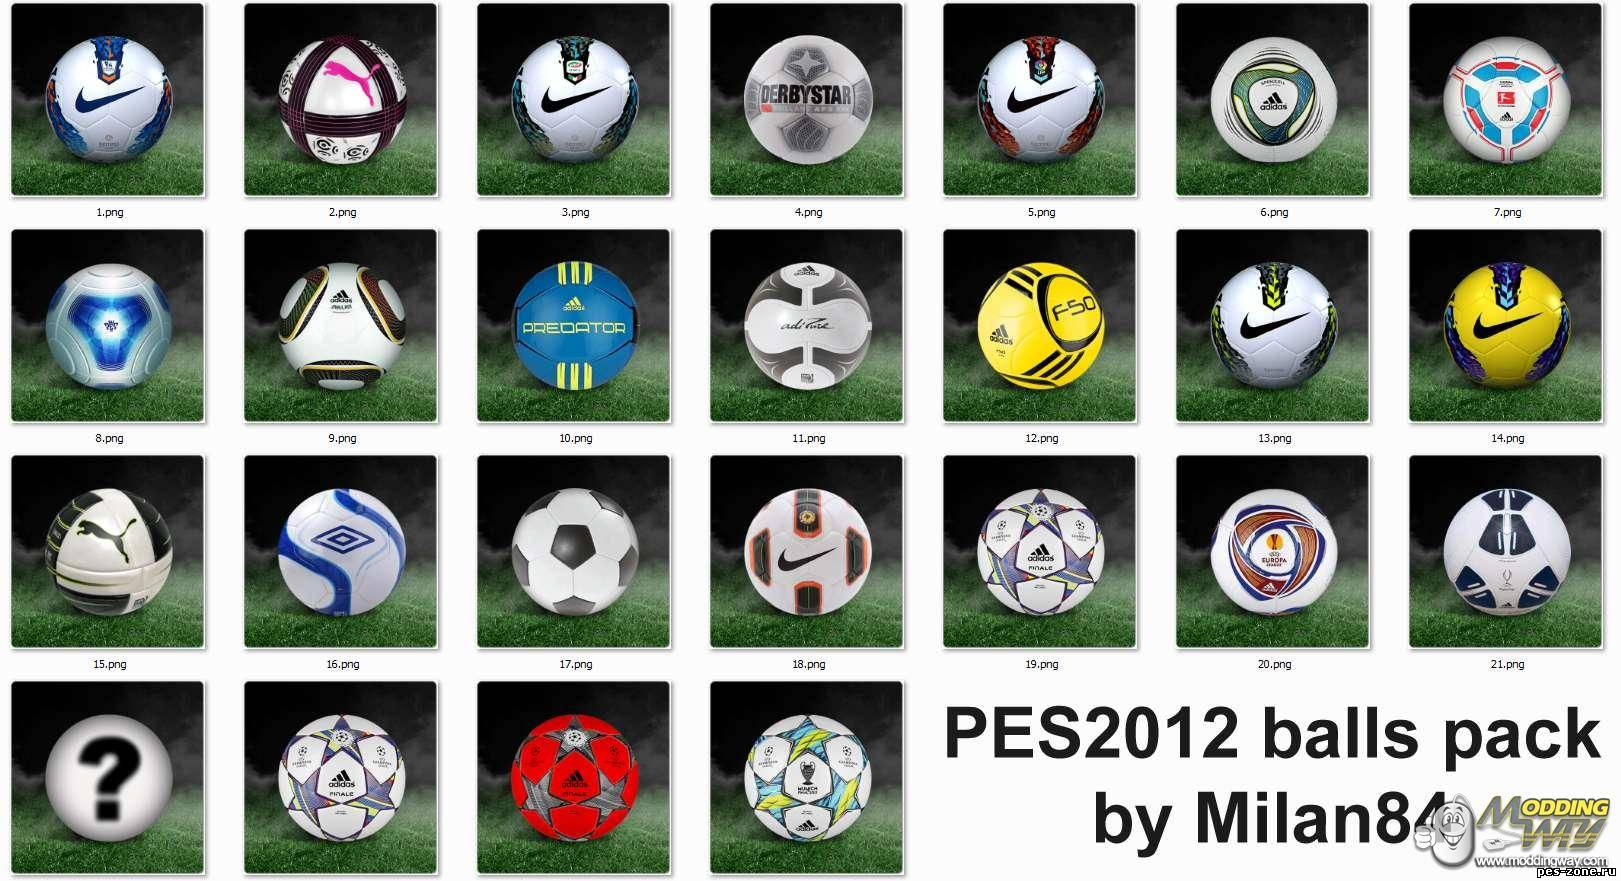 PES2012 balls pack